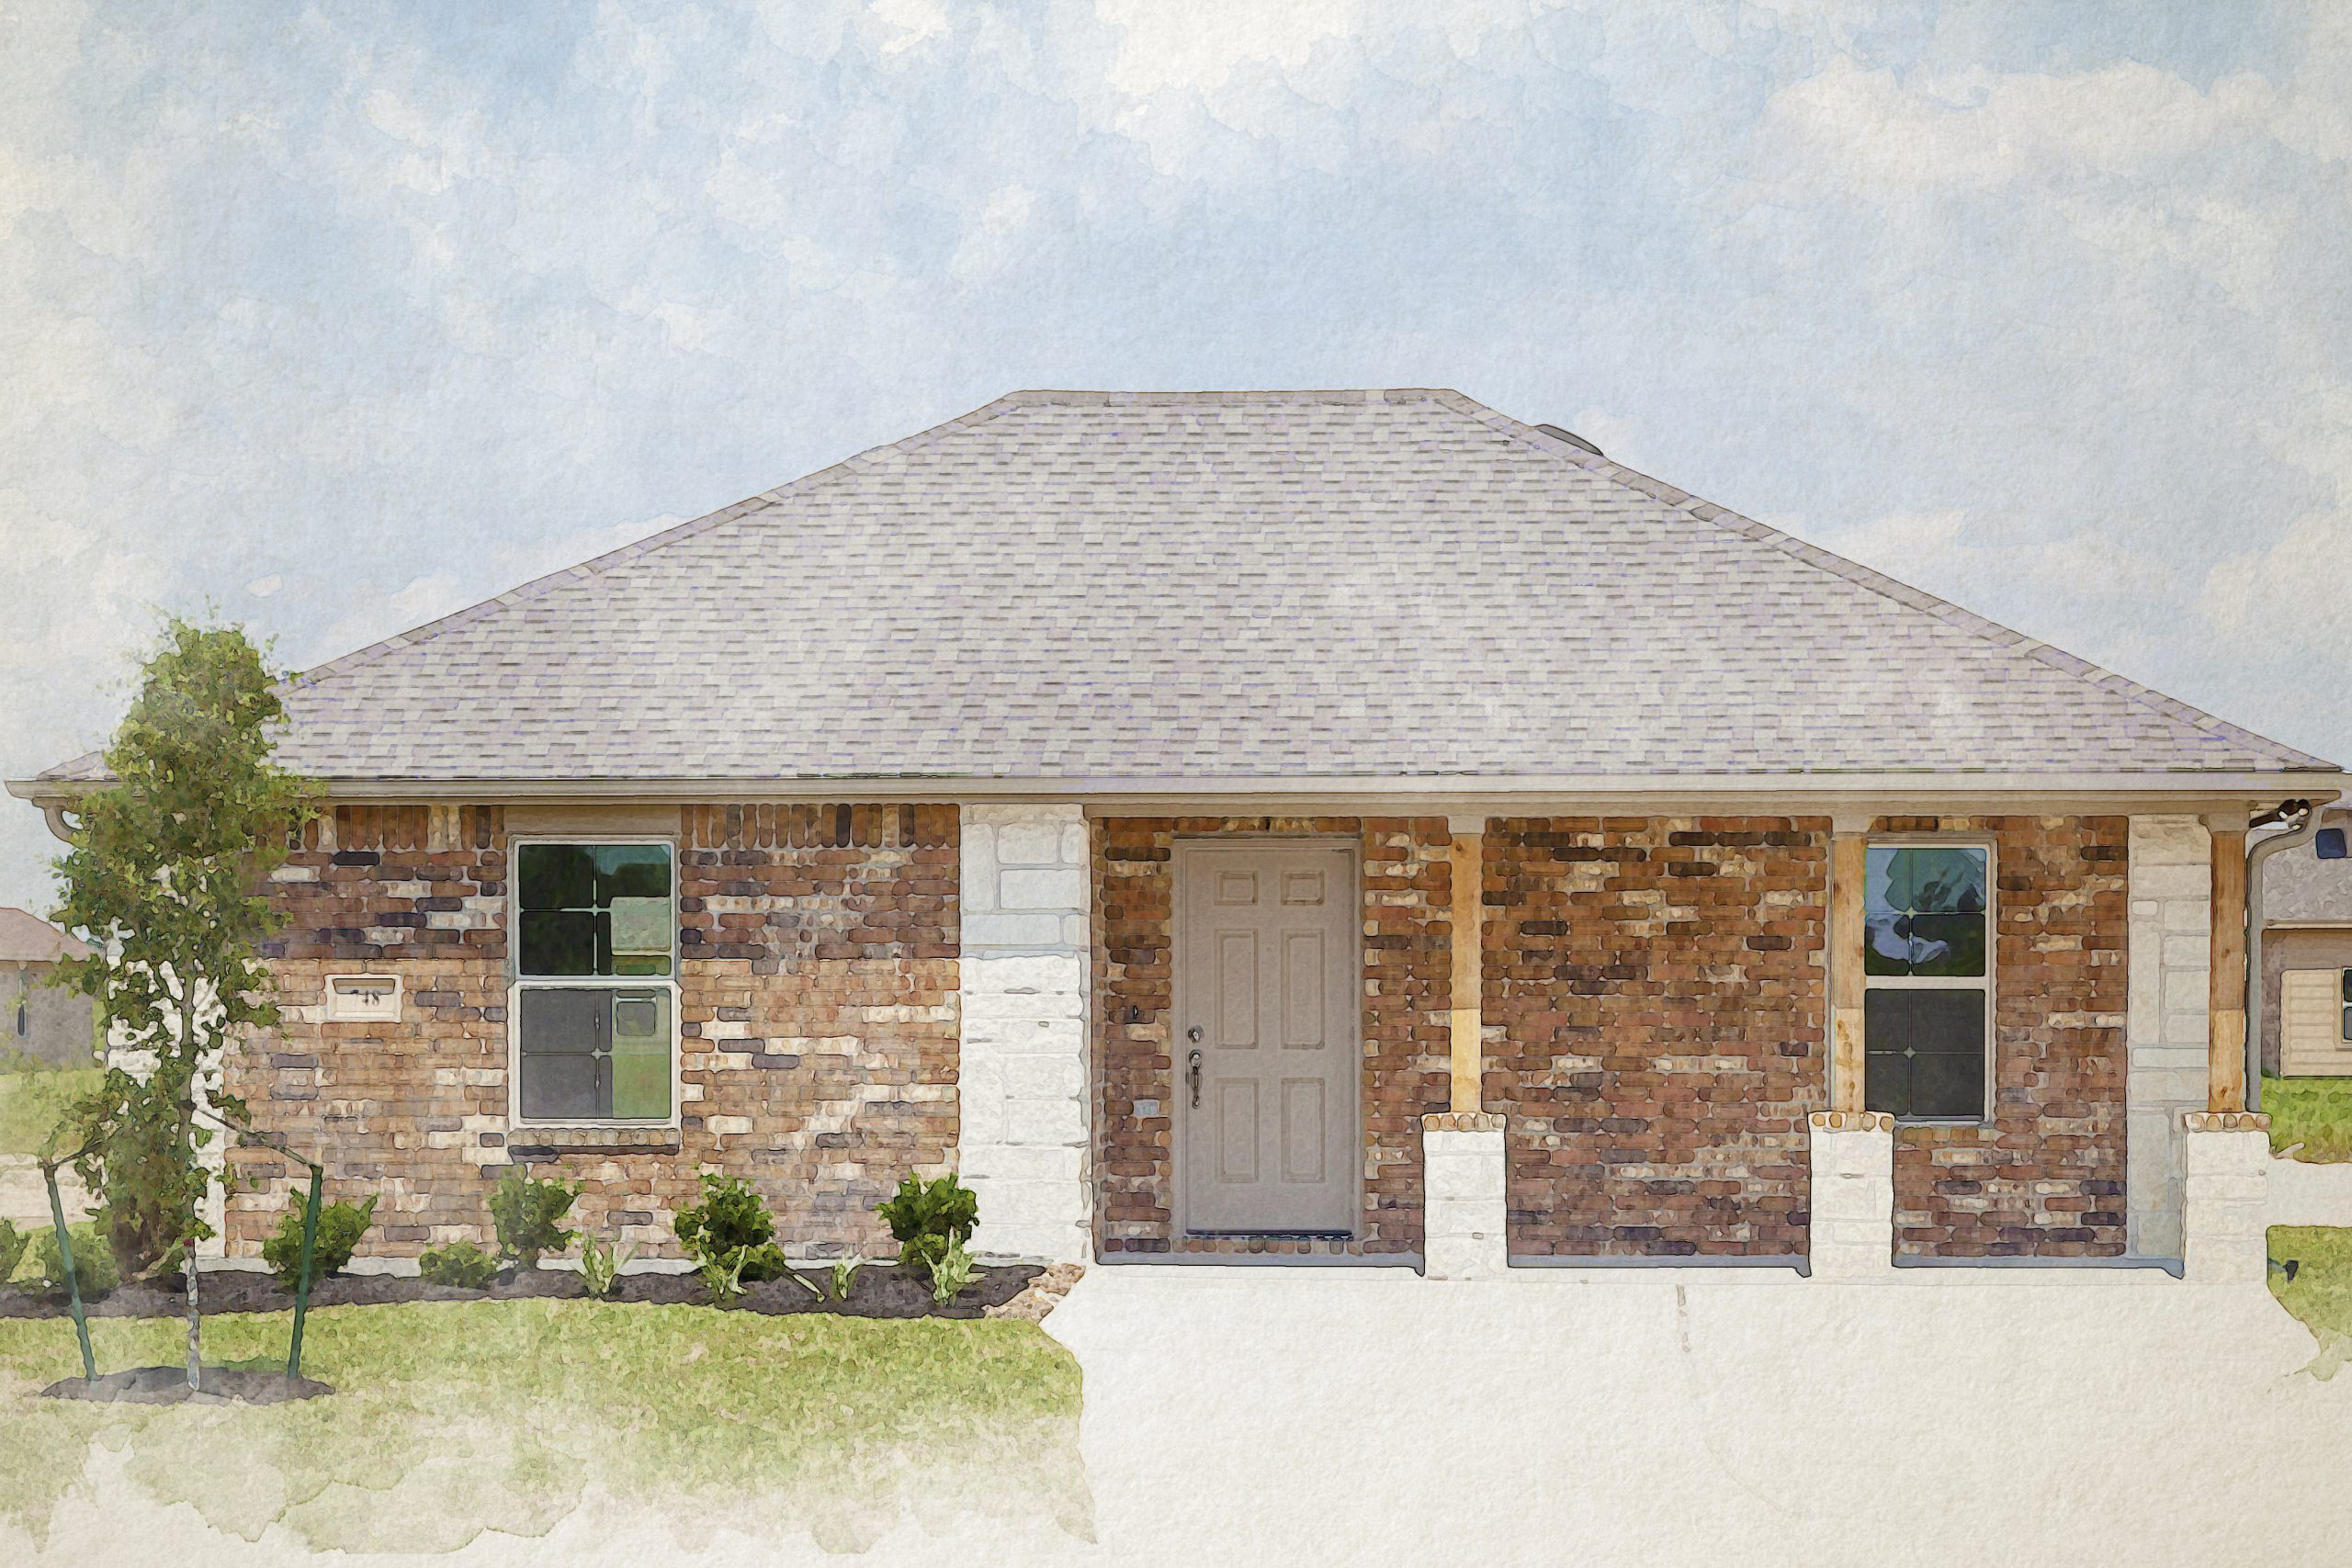 748 Road 5105 | New Home in the Houston, Texas Area